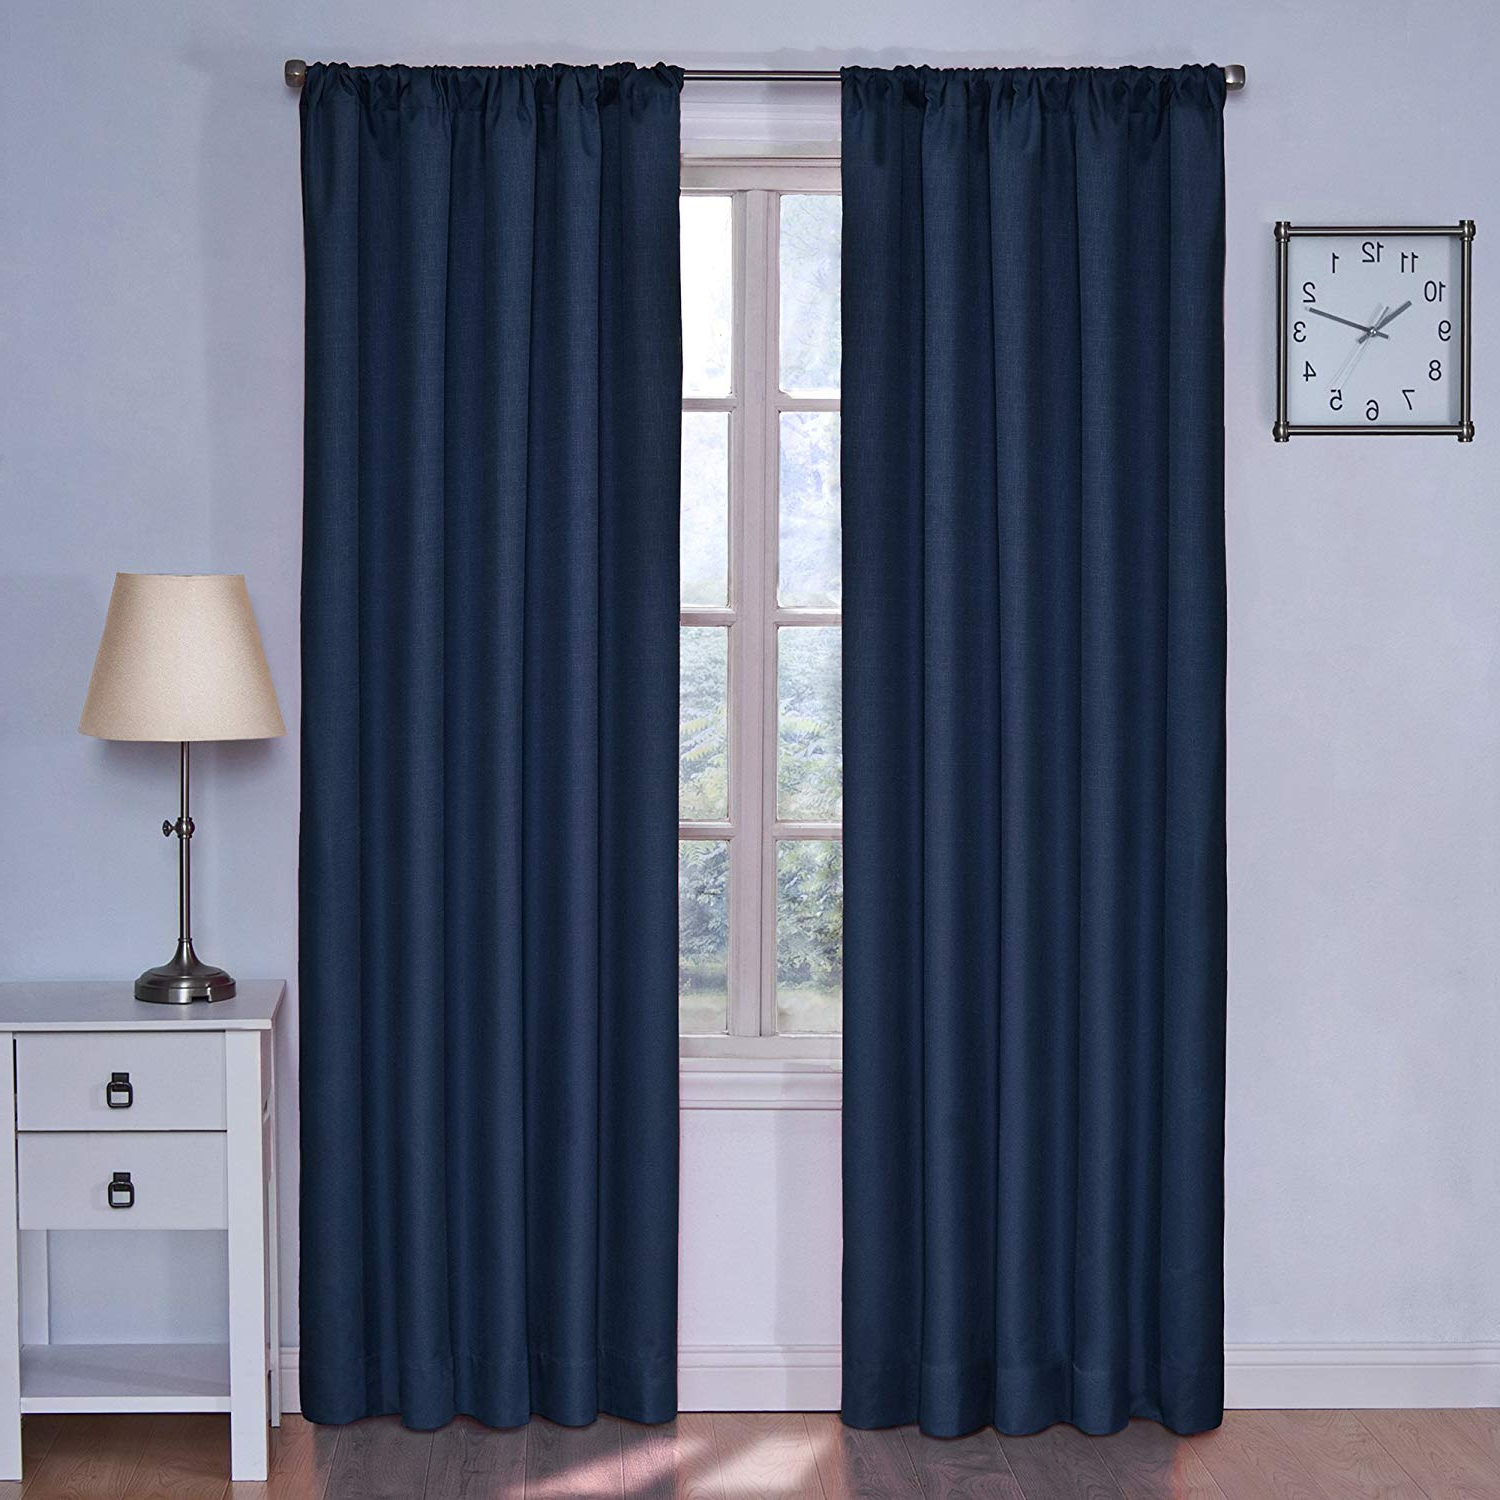 Eclipse Kendall Blackout Window Curtain Panels With Favorite Eclipse Kids Kendall Blackout Thermal Curtain Panel,denim, 42 Inch X 63 Inch (View 15 of 20)